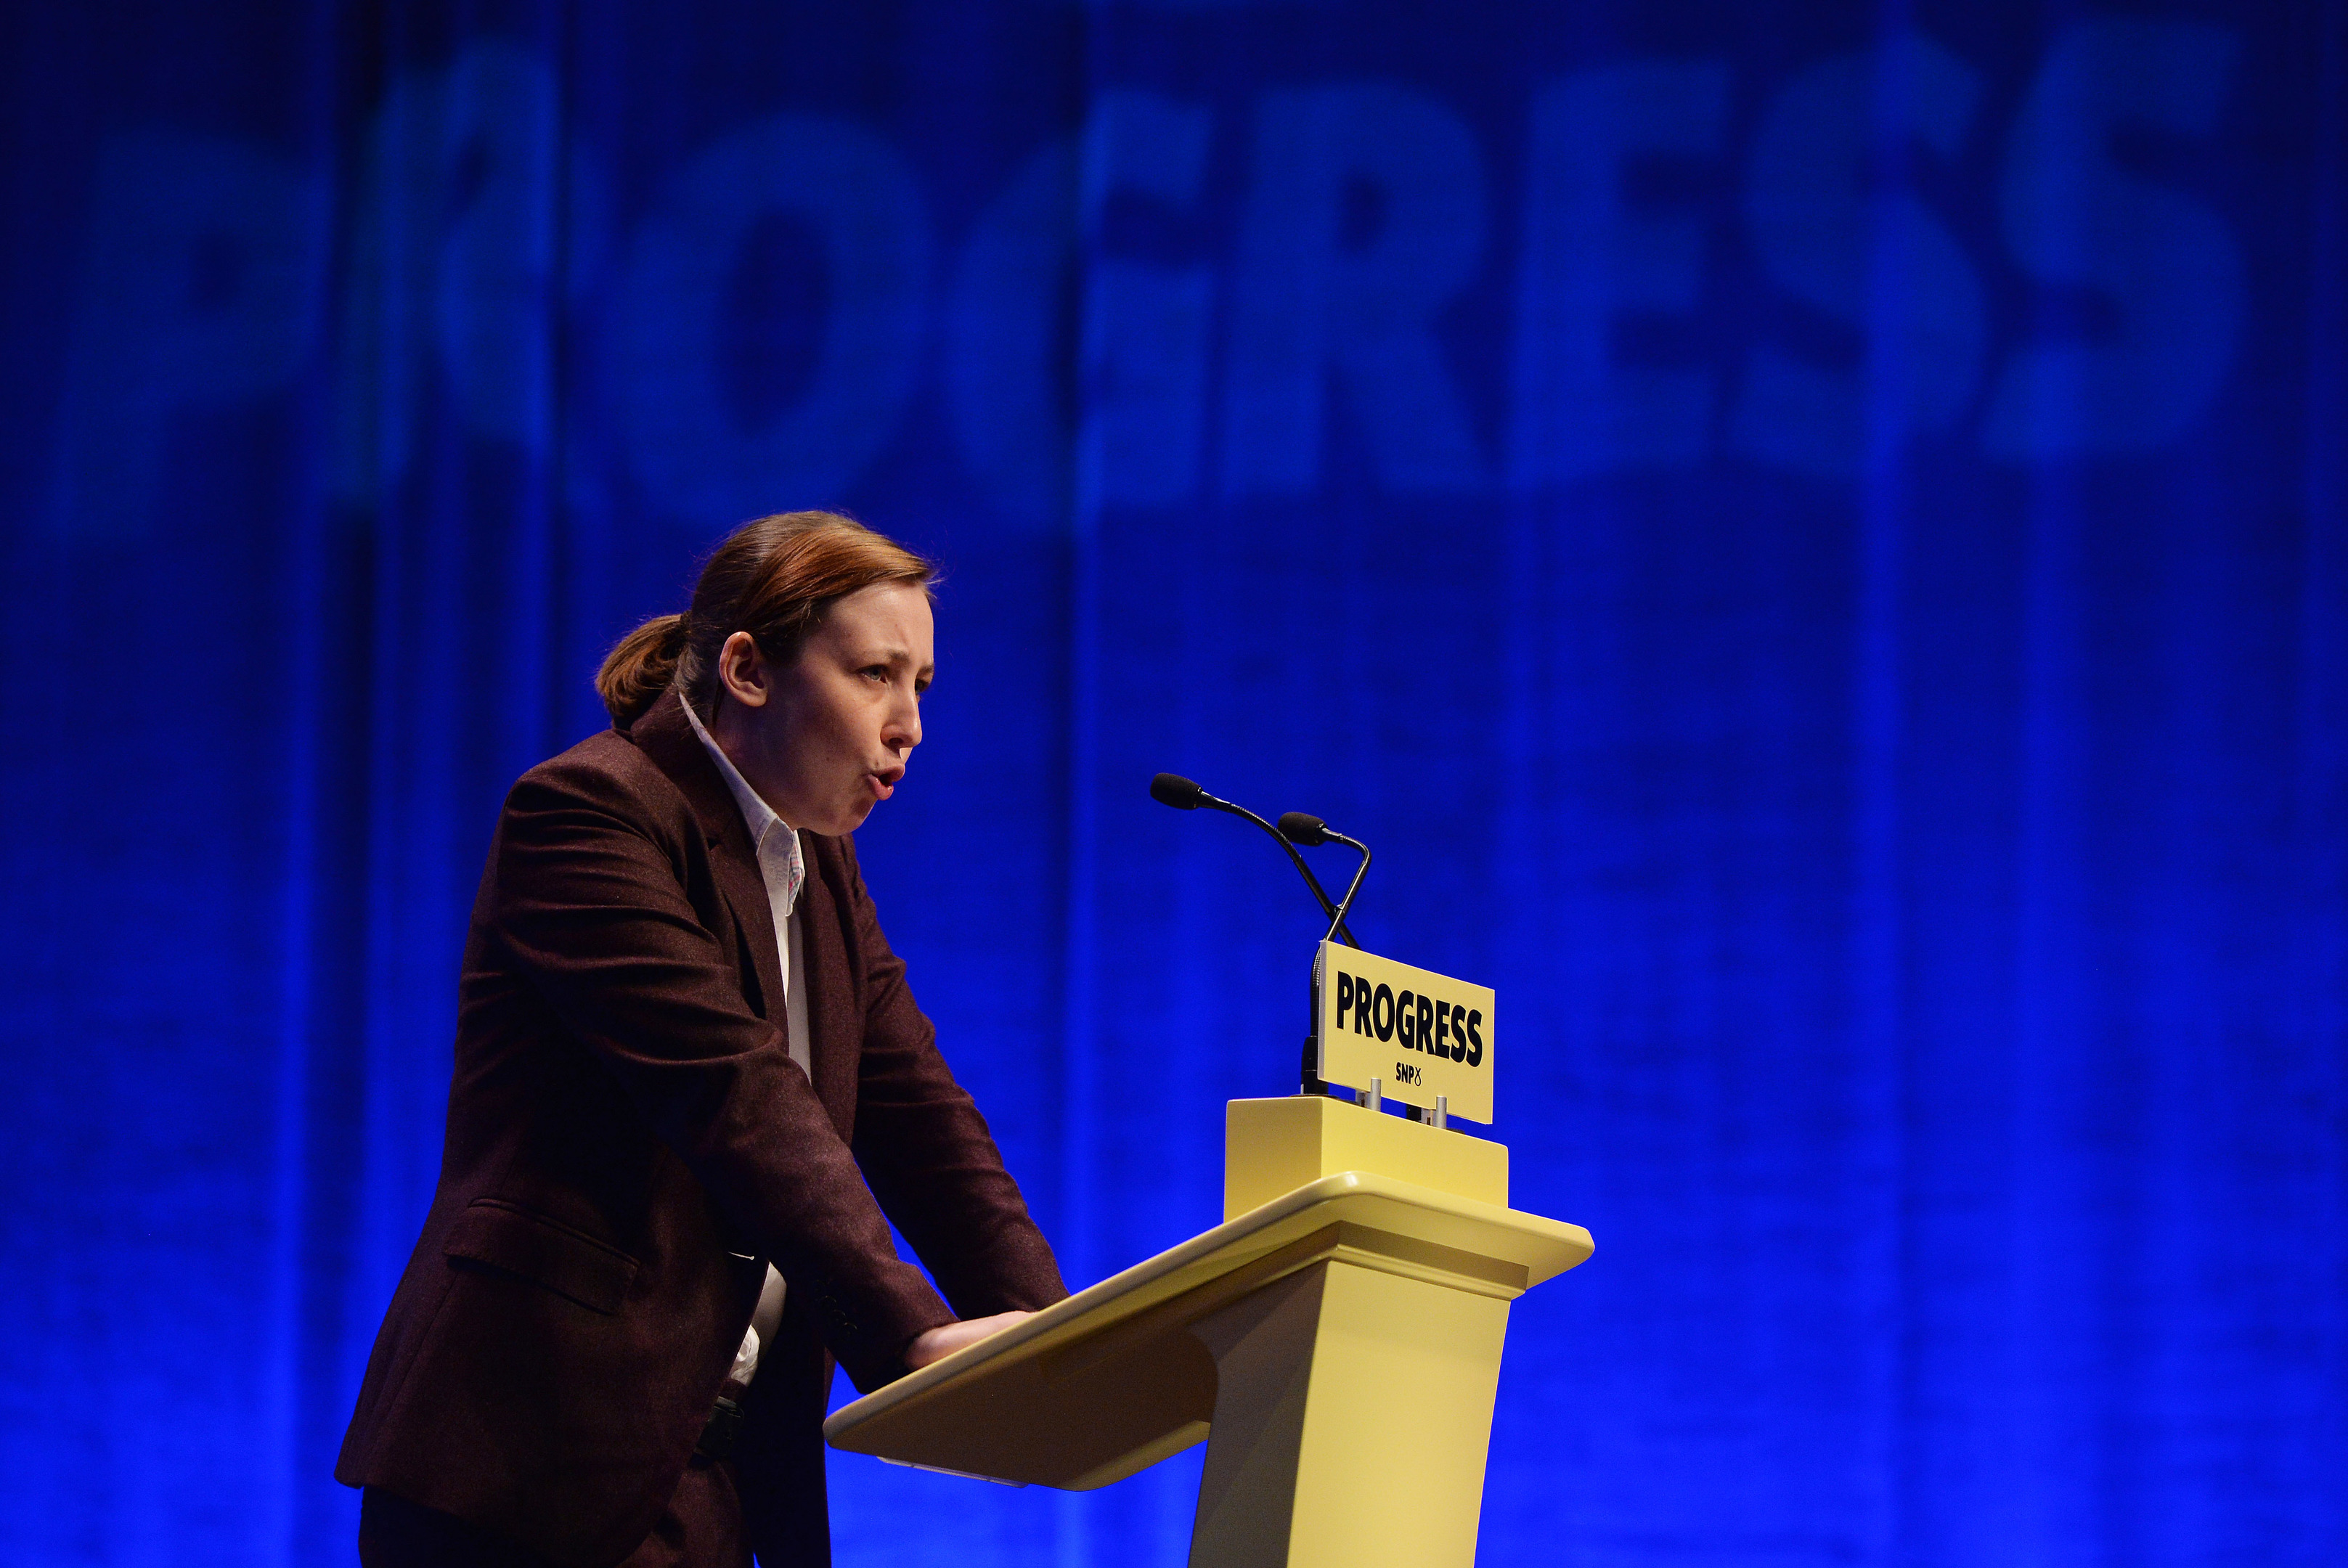 Mhairi Black MP, speaks to delegates ahead of First Minister & SNP Leader Nicola Sturgeon's keynote speech at The SNP Autumn Conference 2017 at the Scottish Exhibition and Conference Centre on October 10, 2017 in Glasgow, Scotland. (Mark Runnacles/Getty Images)